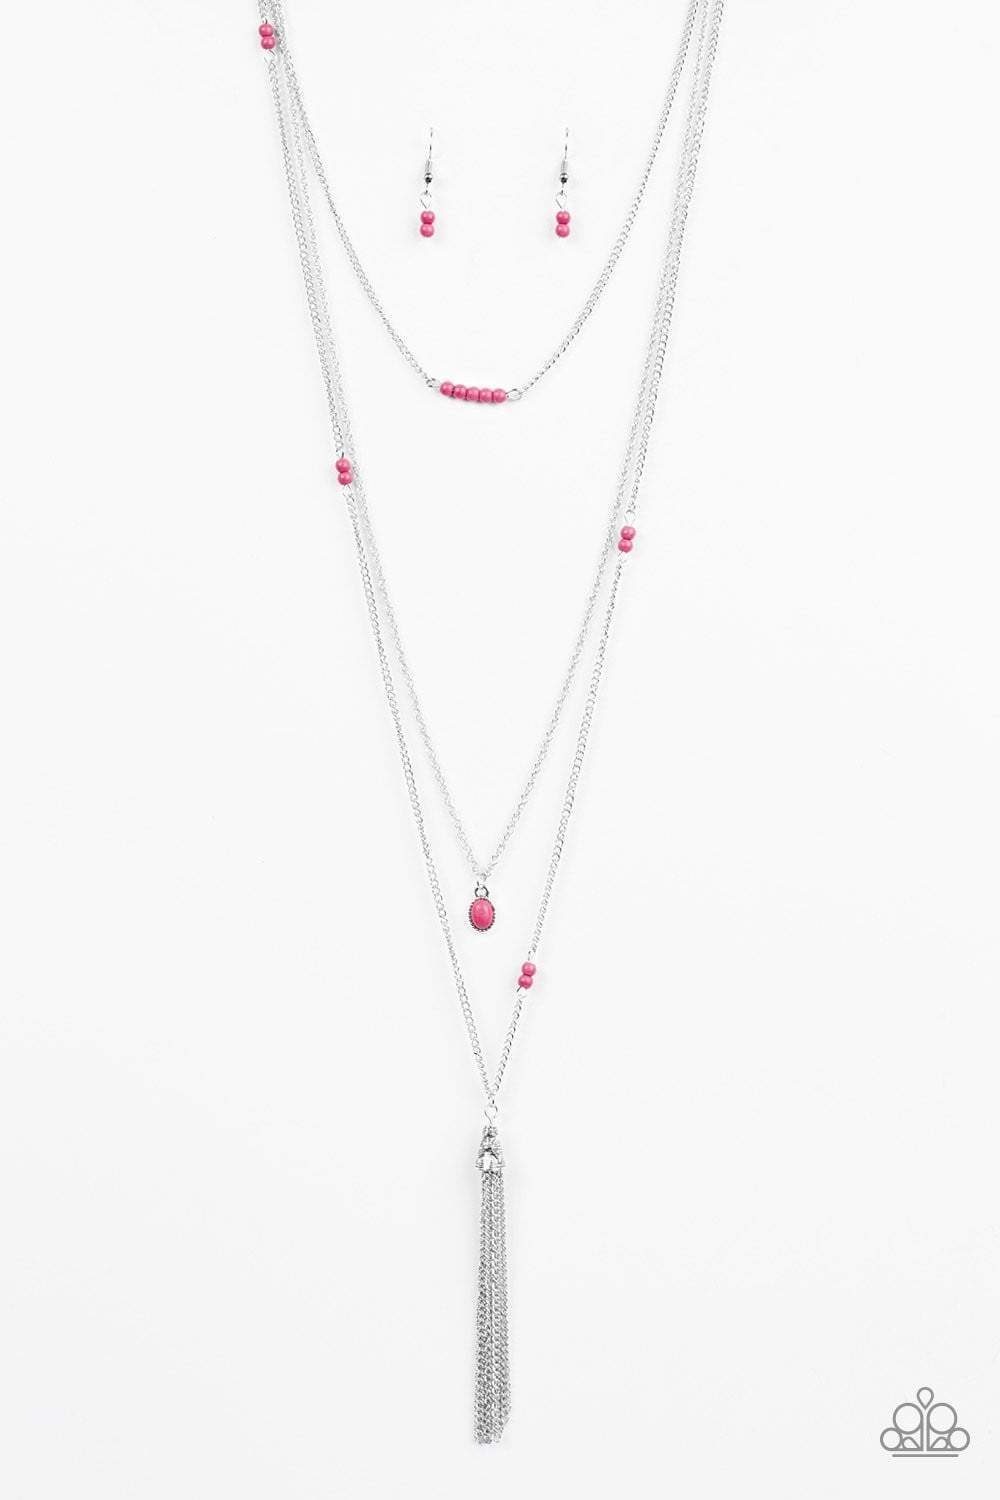 Paparazzi SANDSTONE Castles - Pink Necklace - Bling It On Online